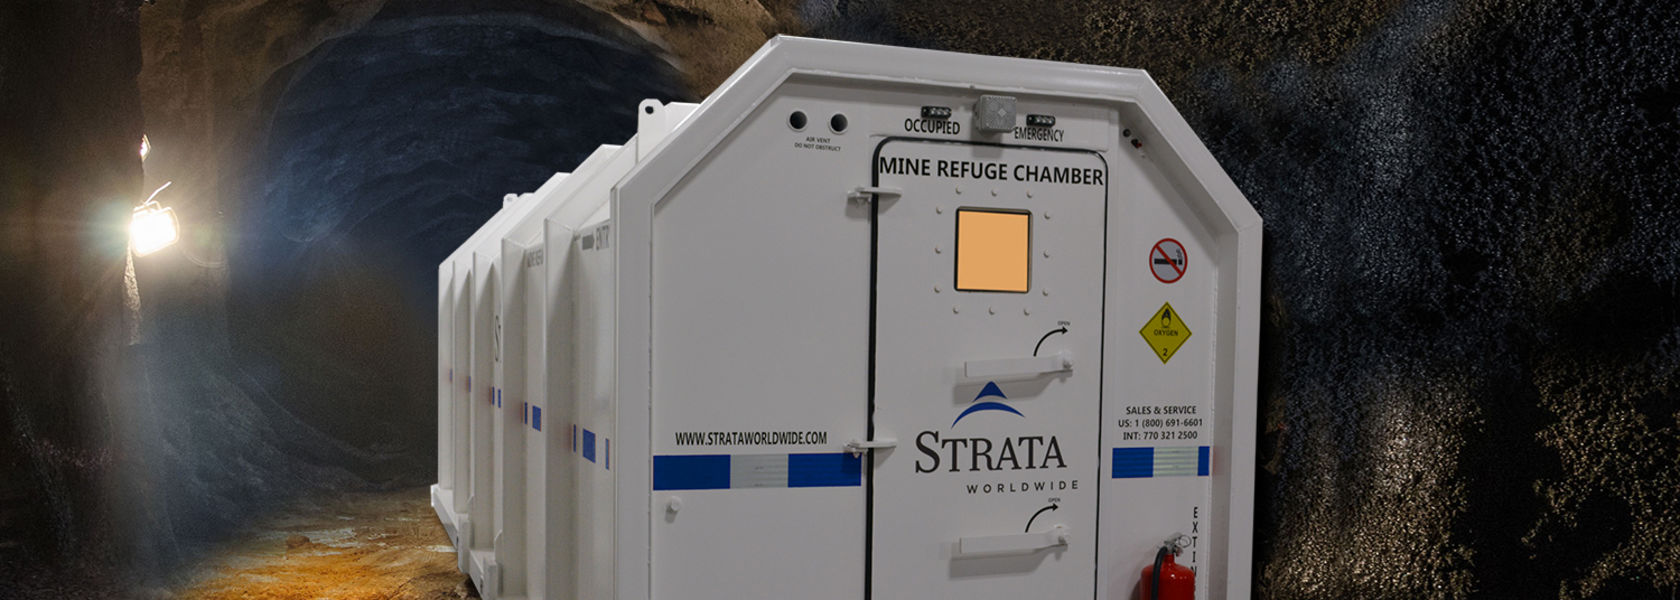 Strata unveils another chamber